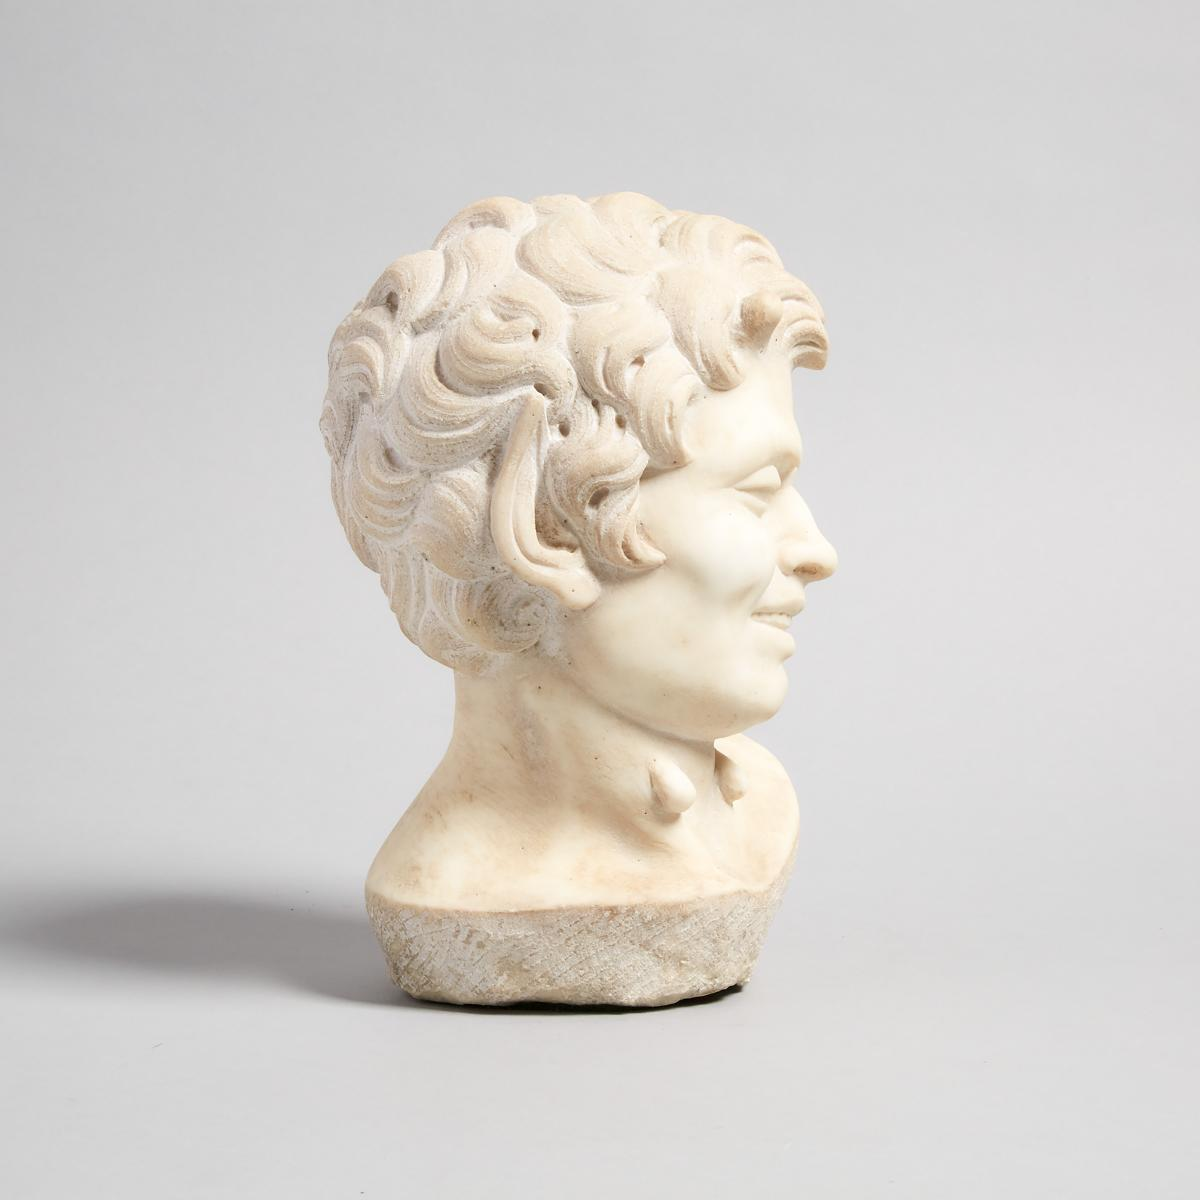 After the Ancient Carved Marble Head of a Satyr, 19th/early 20th century, height 10.25 in — 26 cm - Image 2 of 2